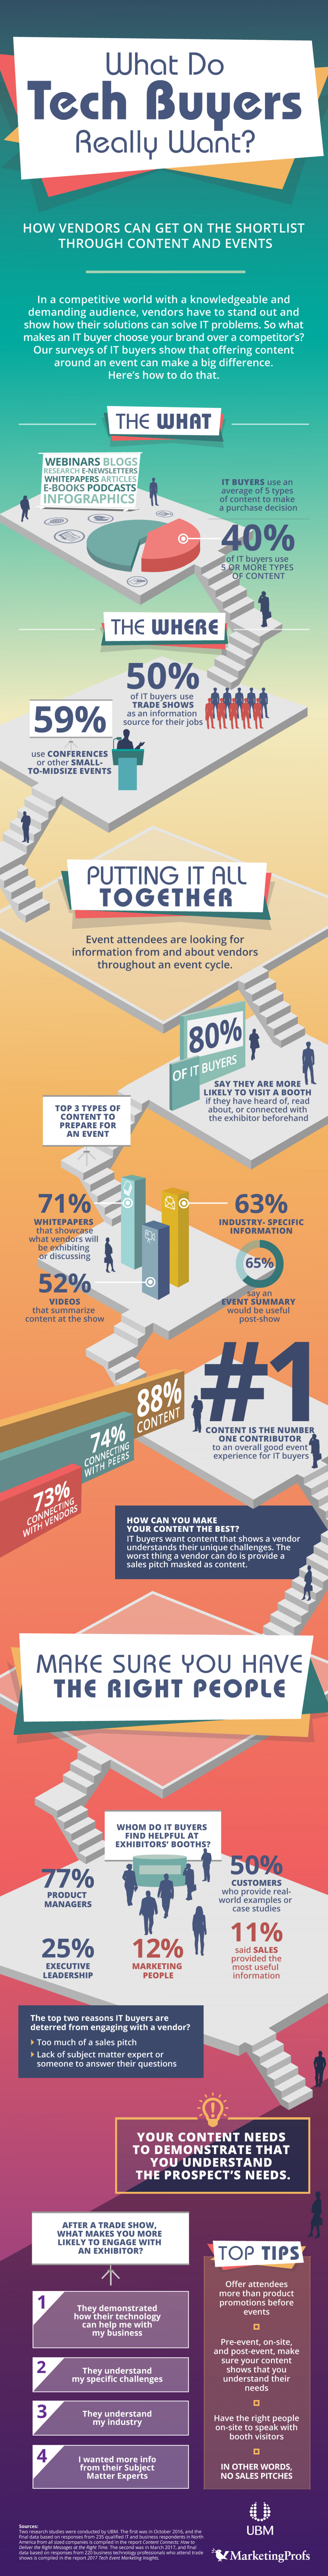 What Do Tech Buyers Really Want?  Infographic